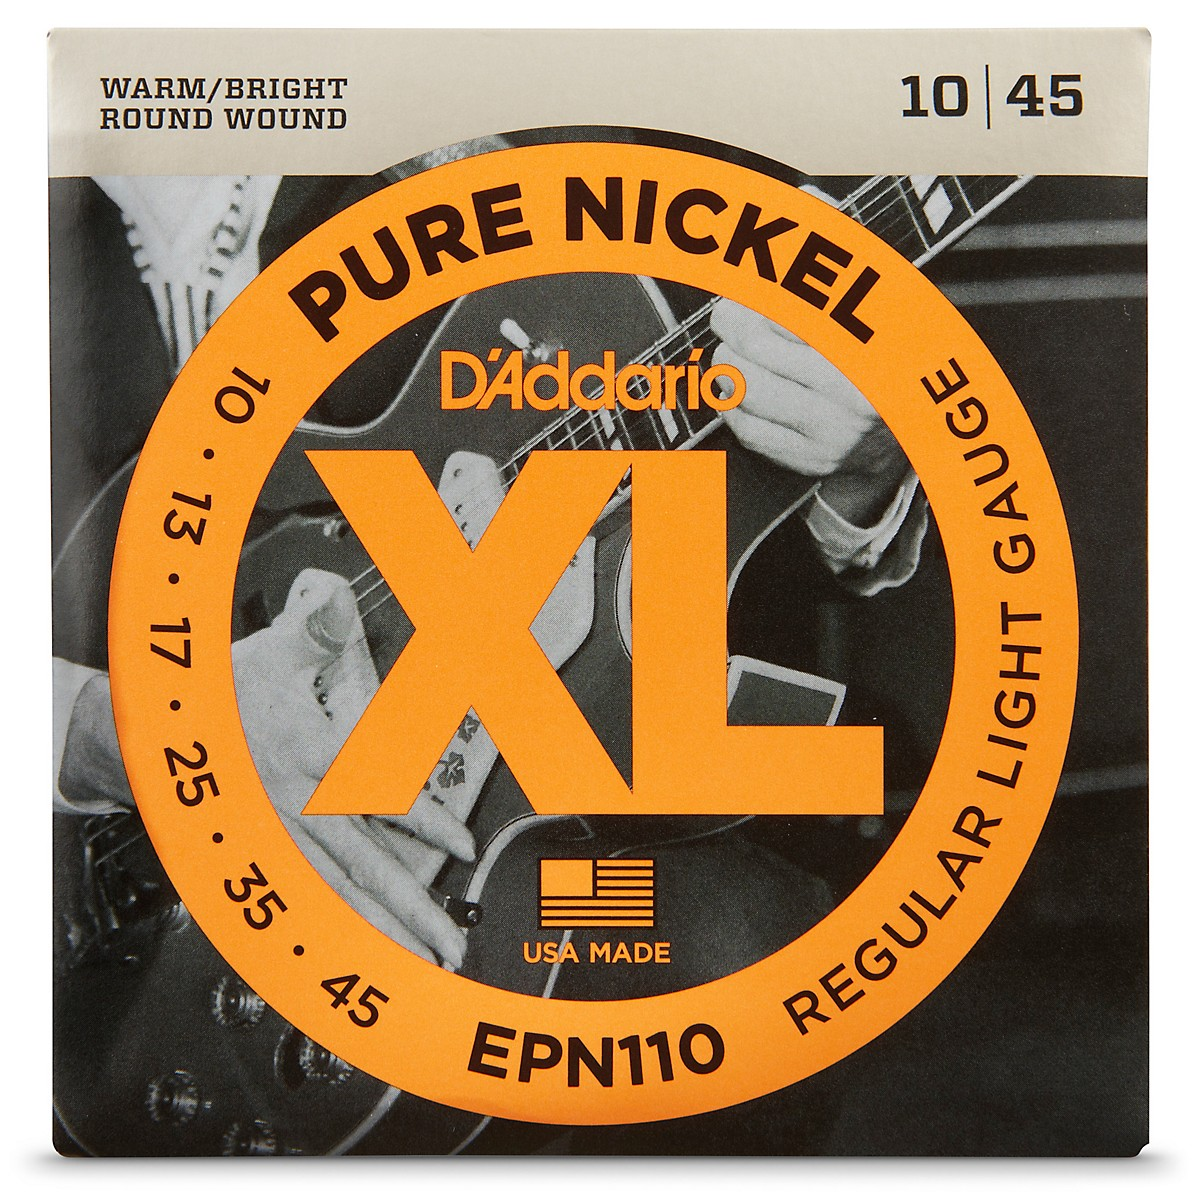 D'Addario EPN110 Pure Nickel Electric Guitar Regular Light Strings